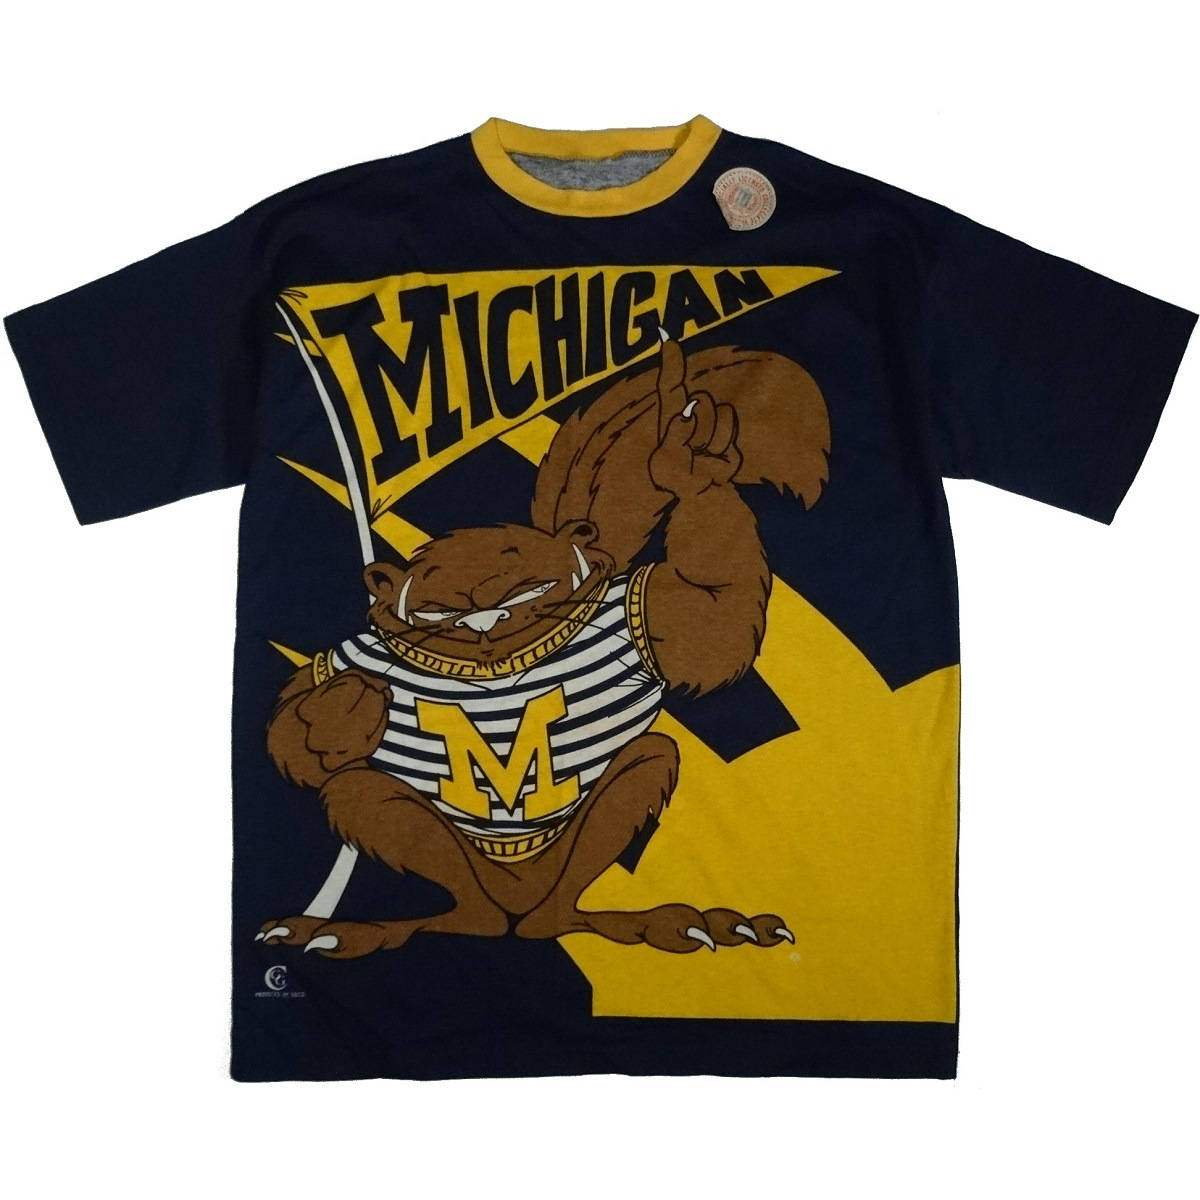 michigan wolverines vintage t shirt front of shirt